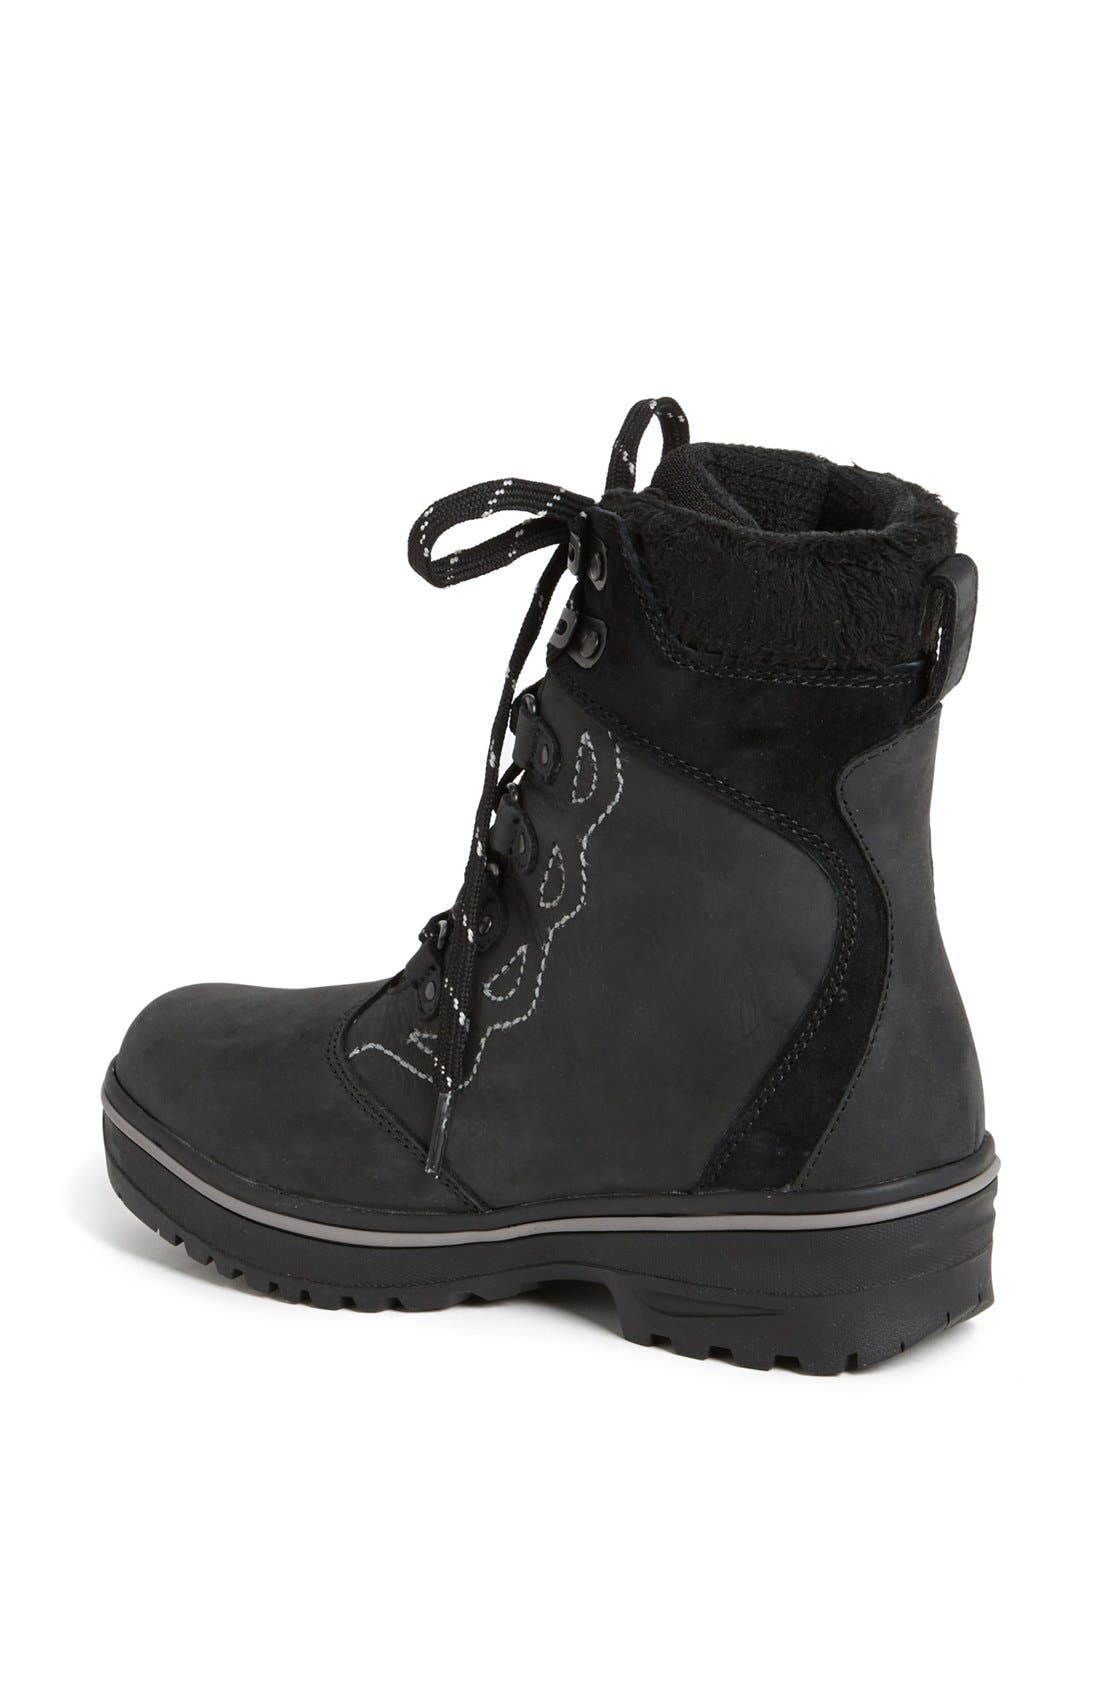 Alternate Image 2  - The North Face 'Snowbreaker' Waterproof Leather Boot (Women)